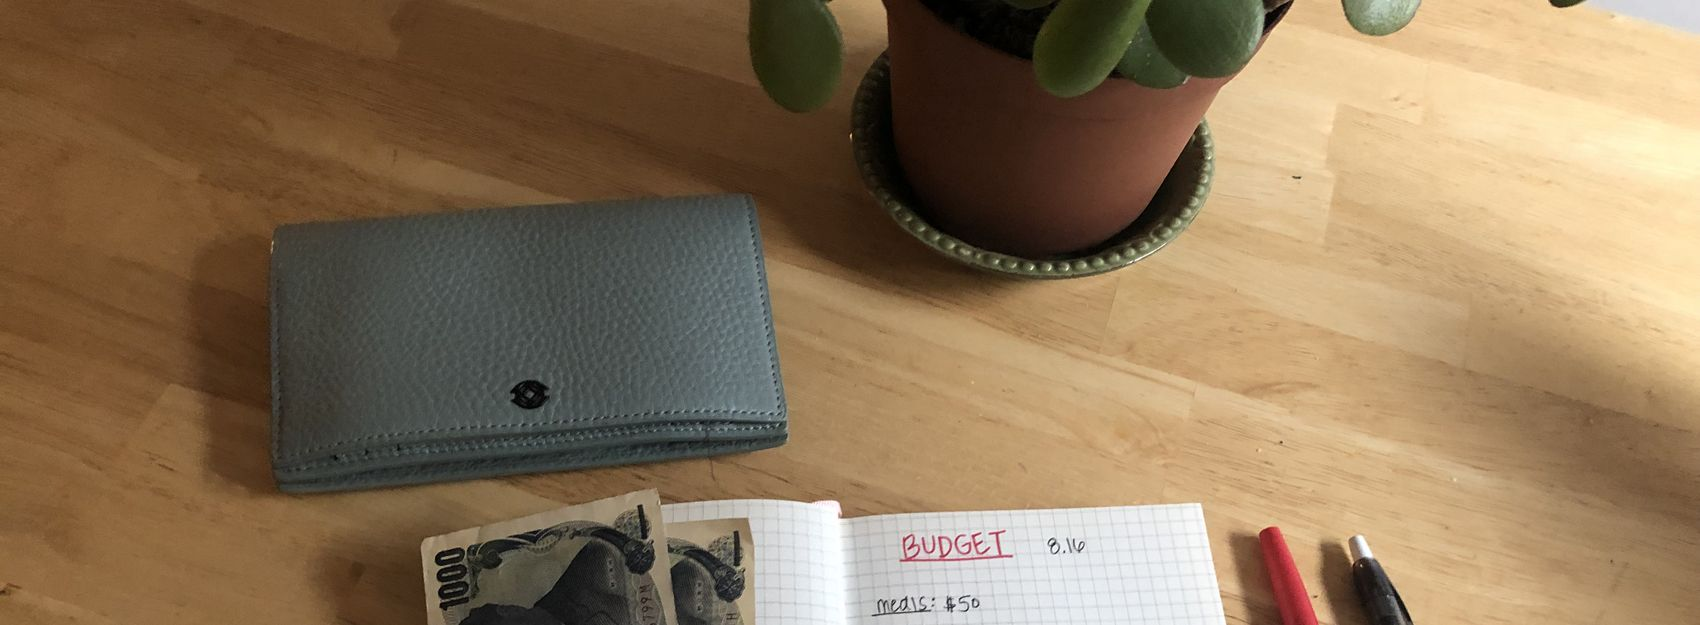 Wallet, currency, and budget in notebook next to pens on wooden table